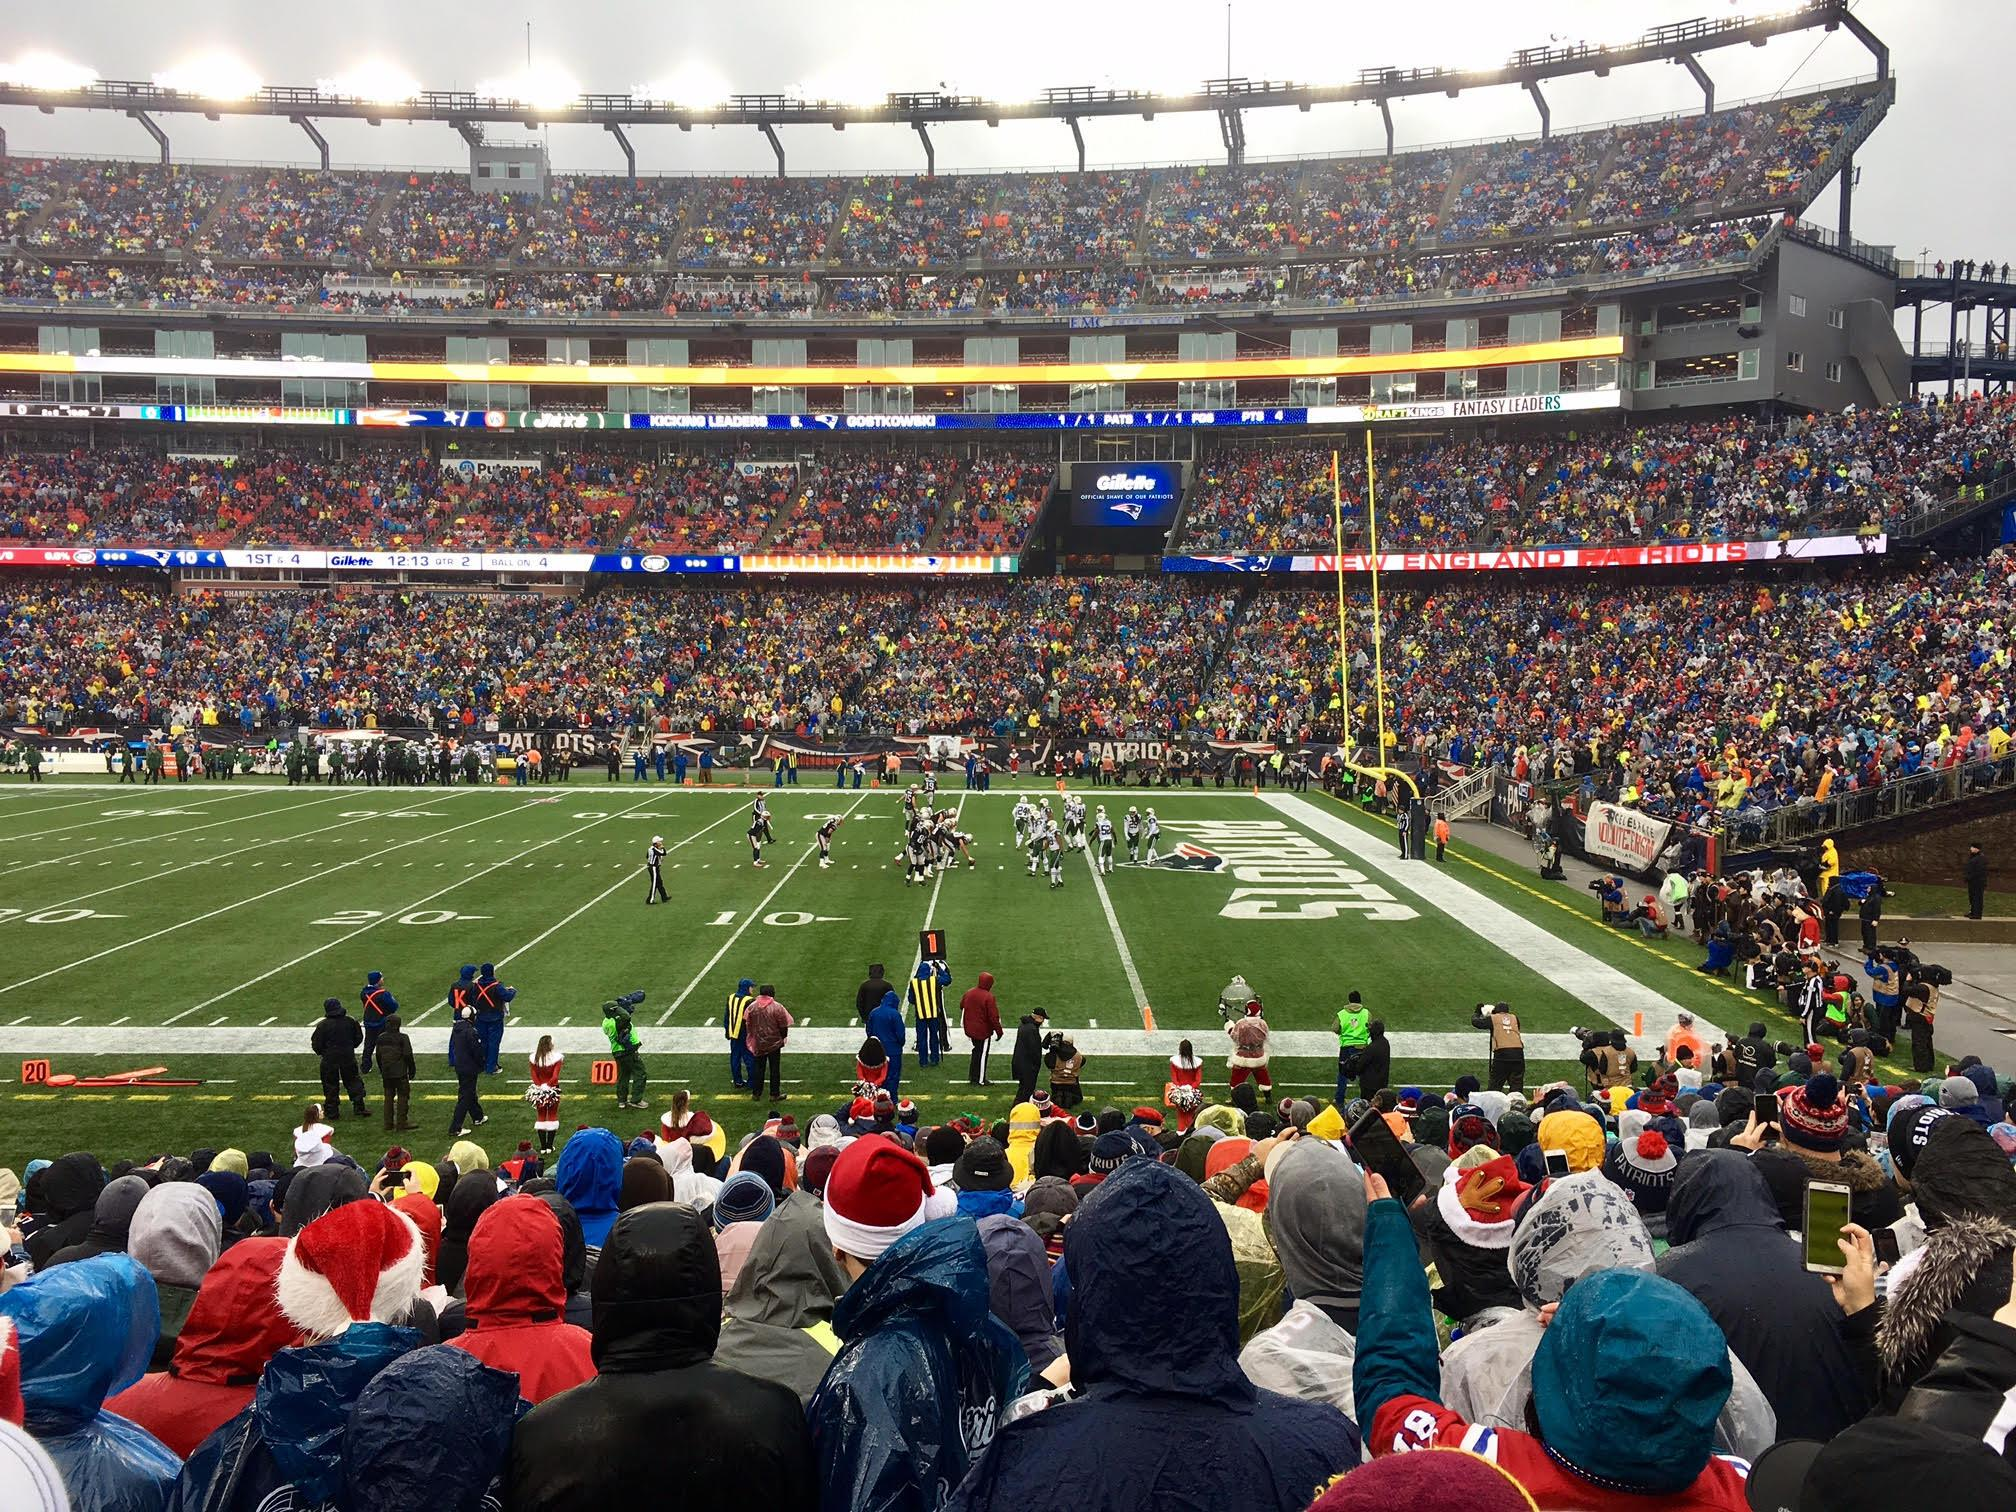 Gillette Stadium Section 106 Row 20 Seat 8